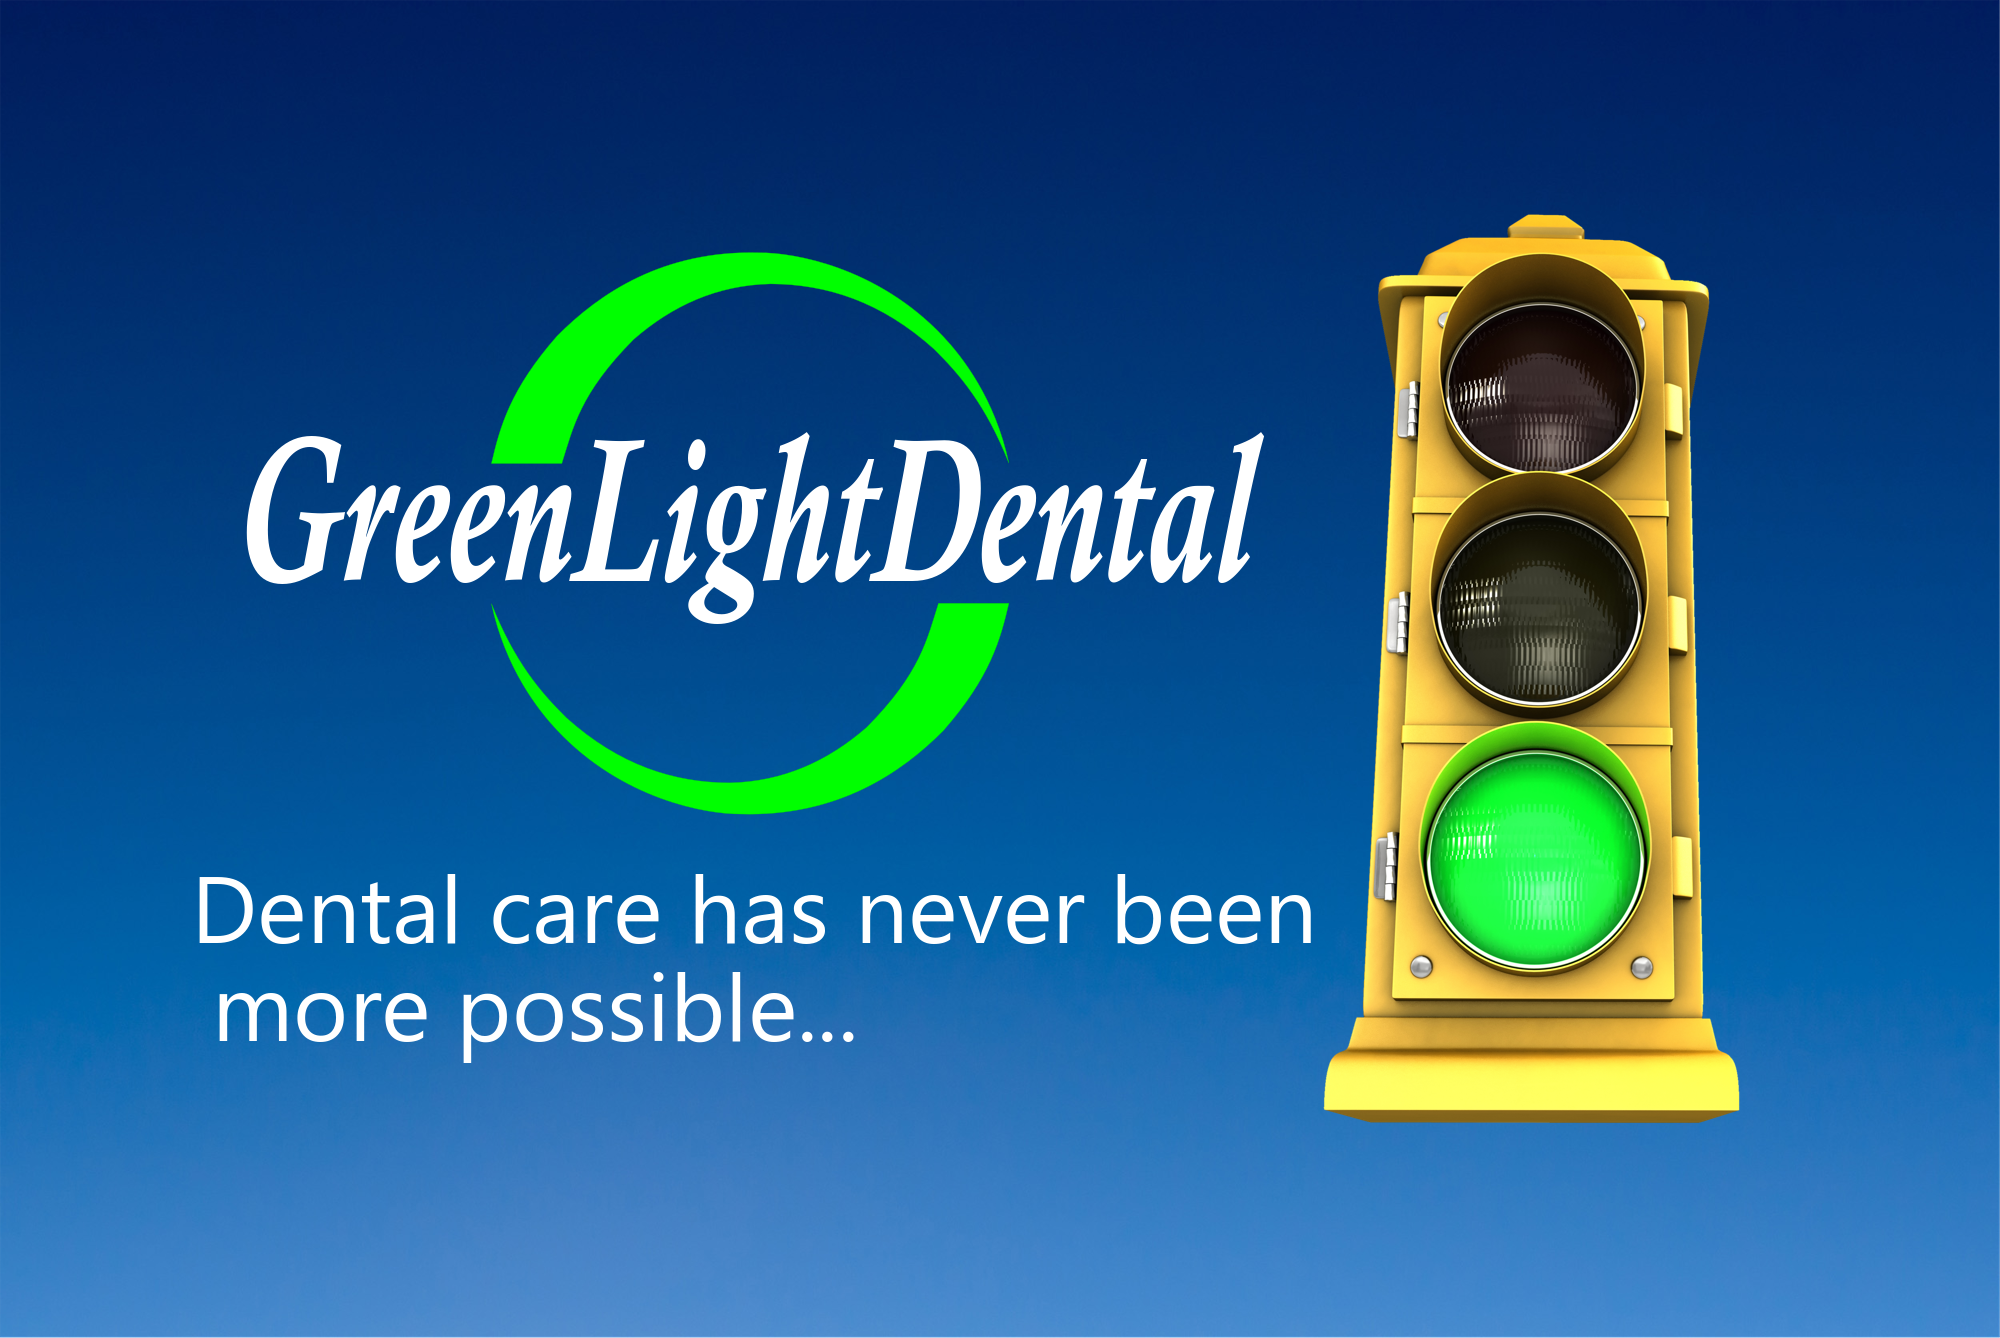 Green Light Dental